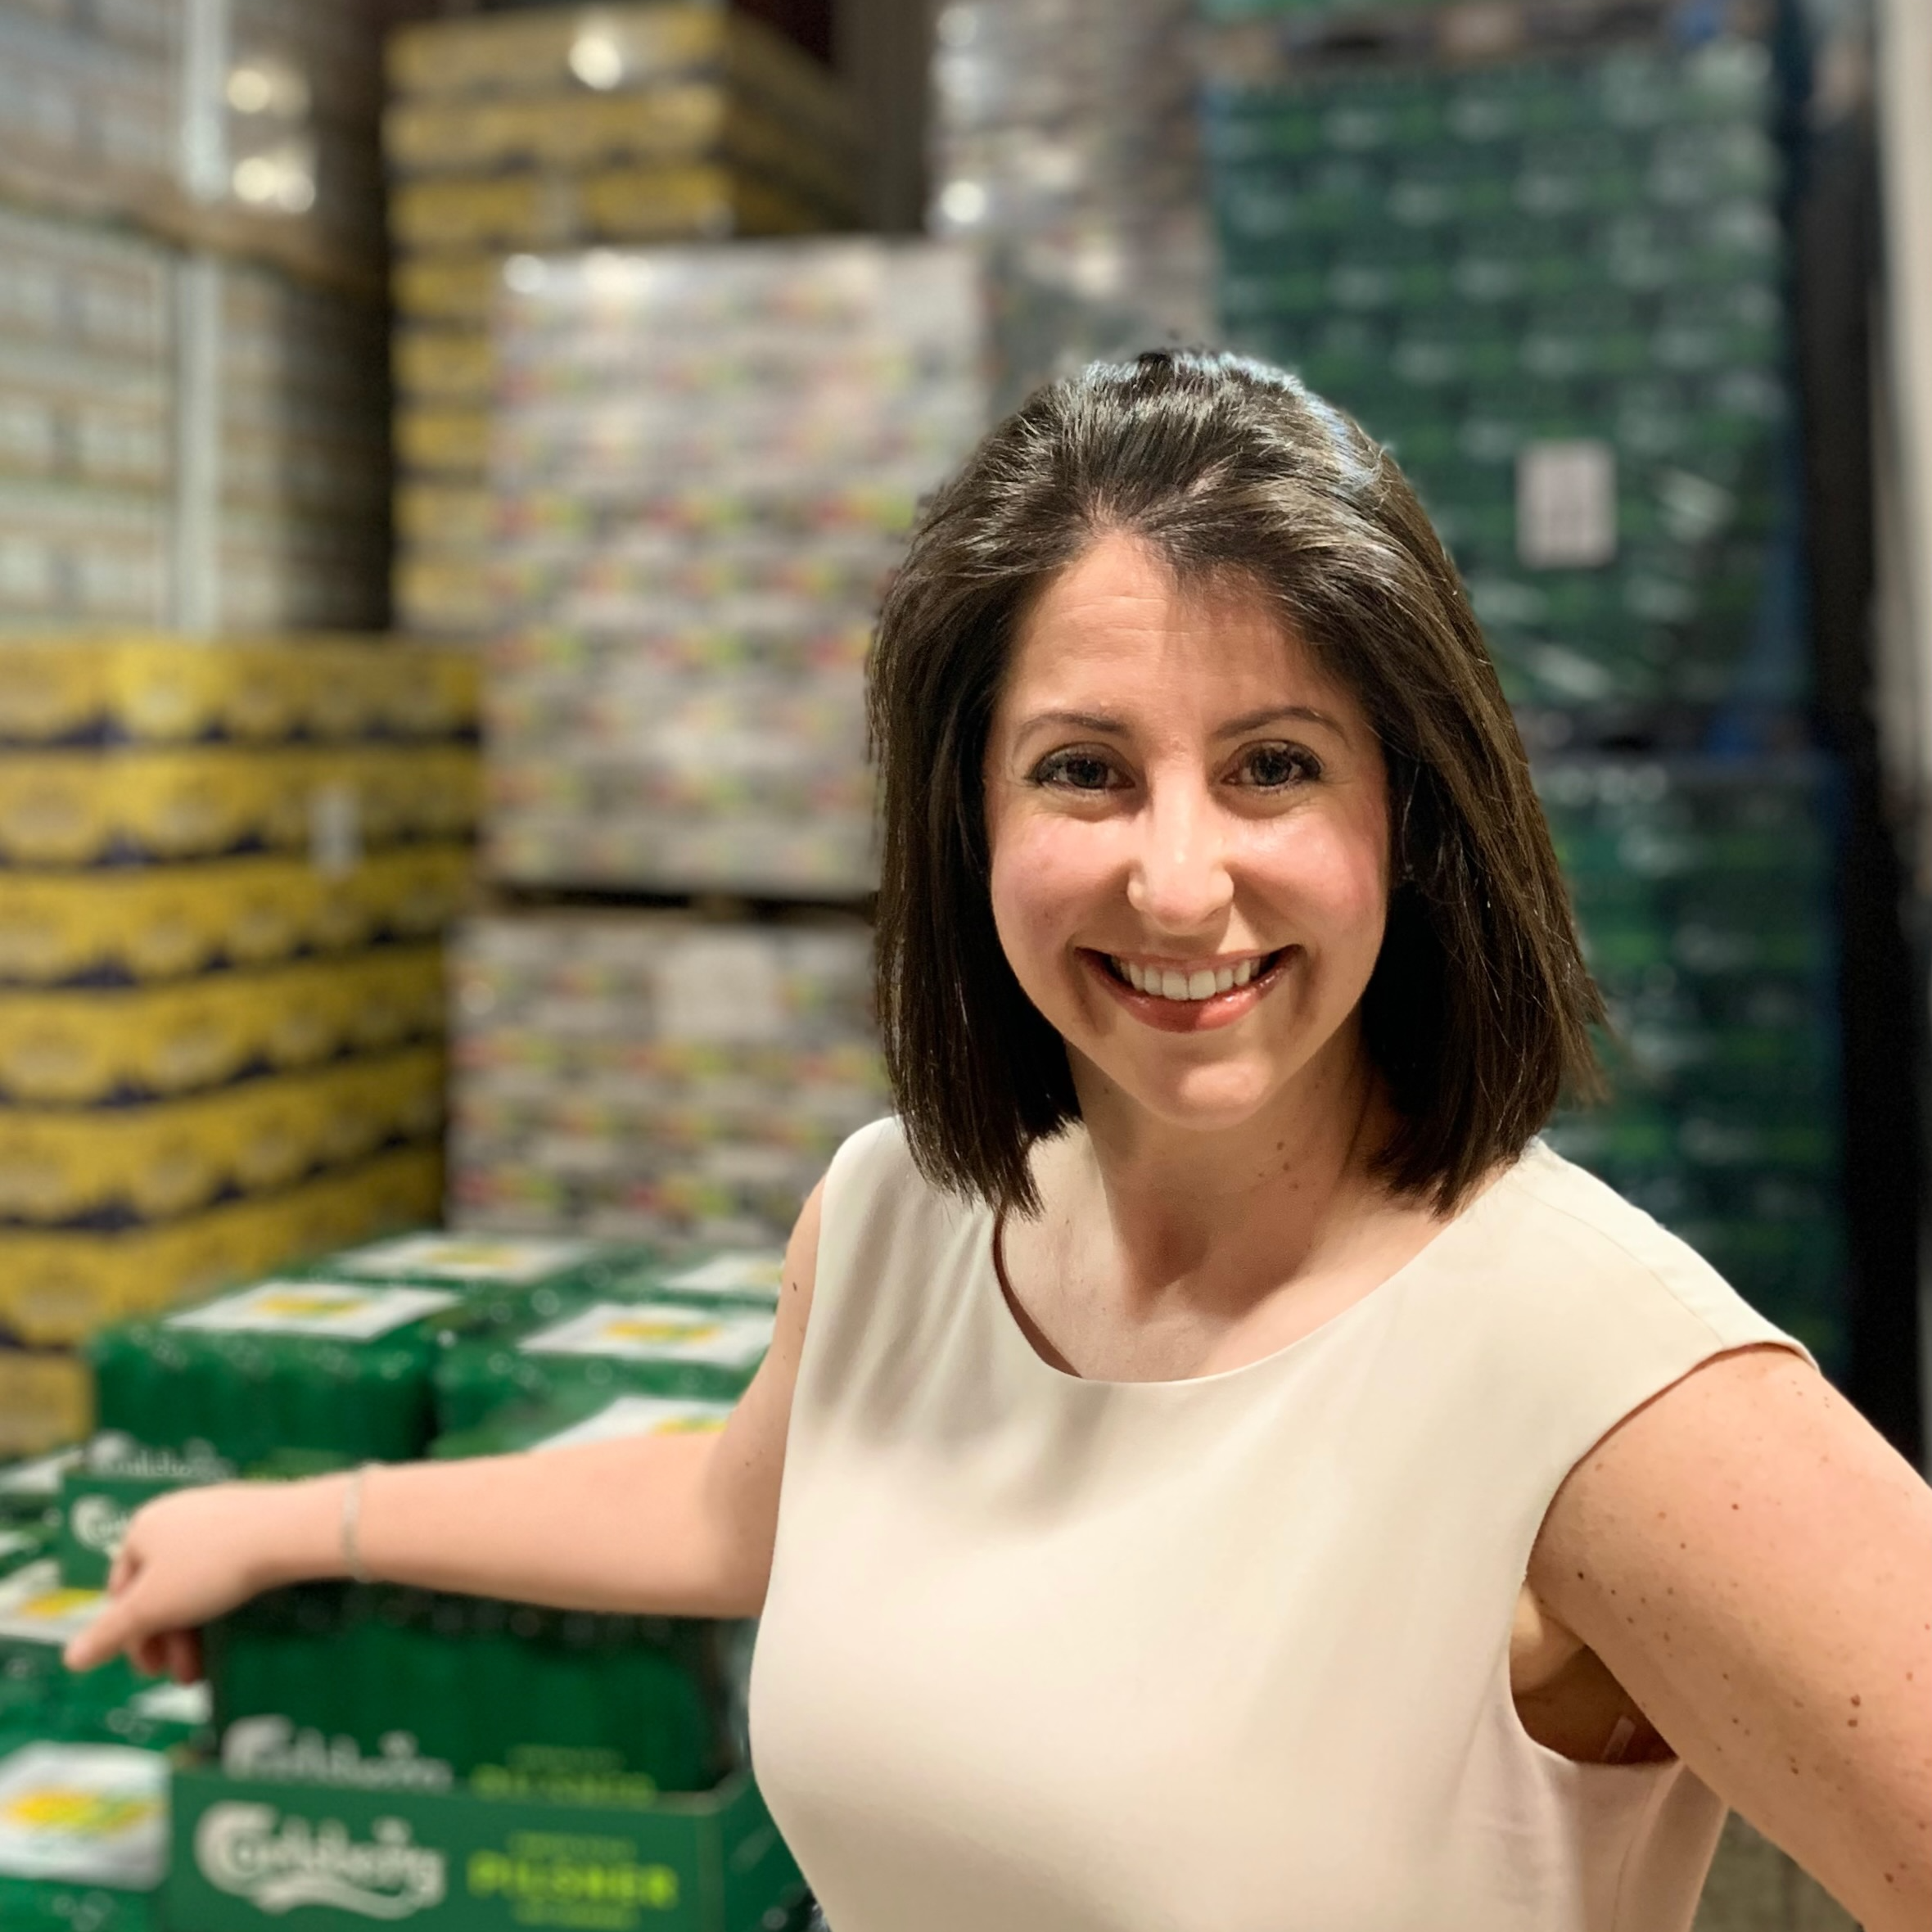 Kim Rejniak - General Manager, Craft Beer Guild Distributing of NY, Sheehan Family Companies